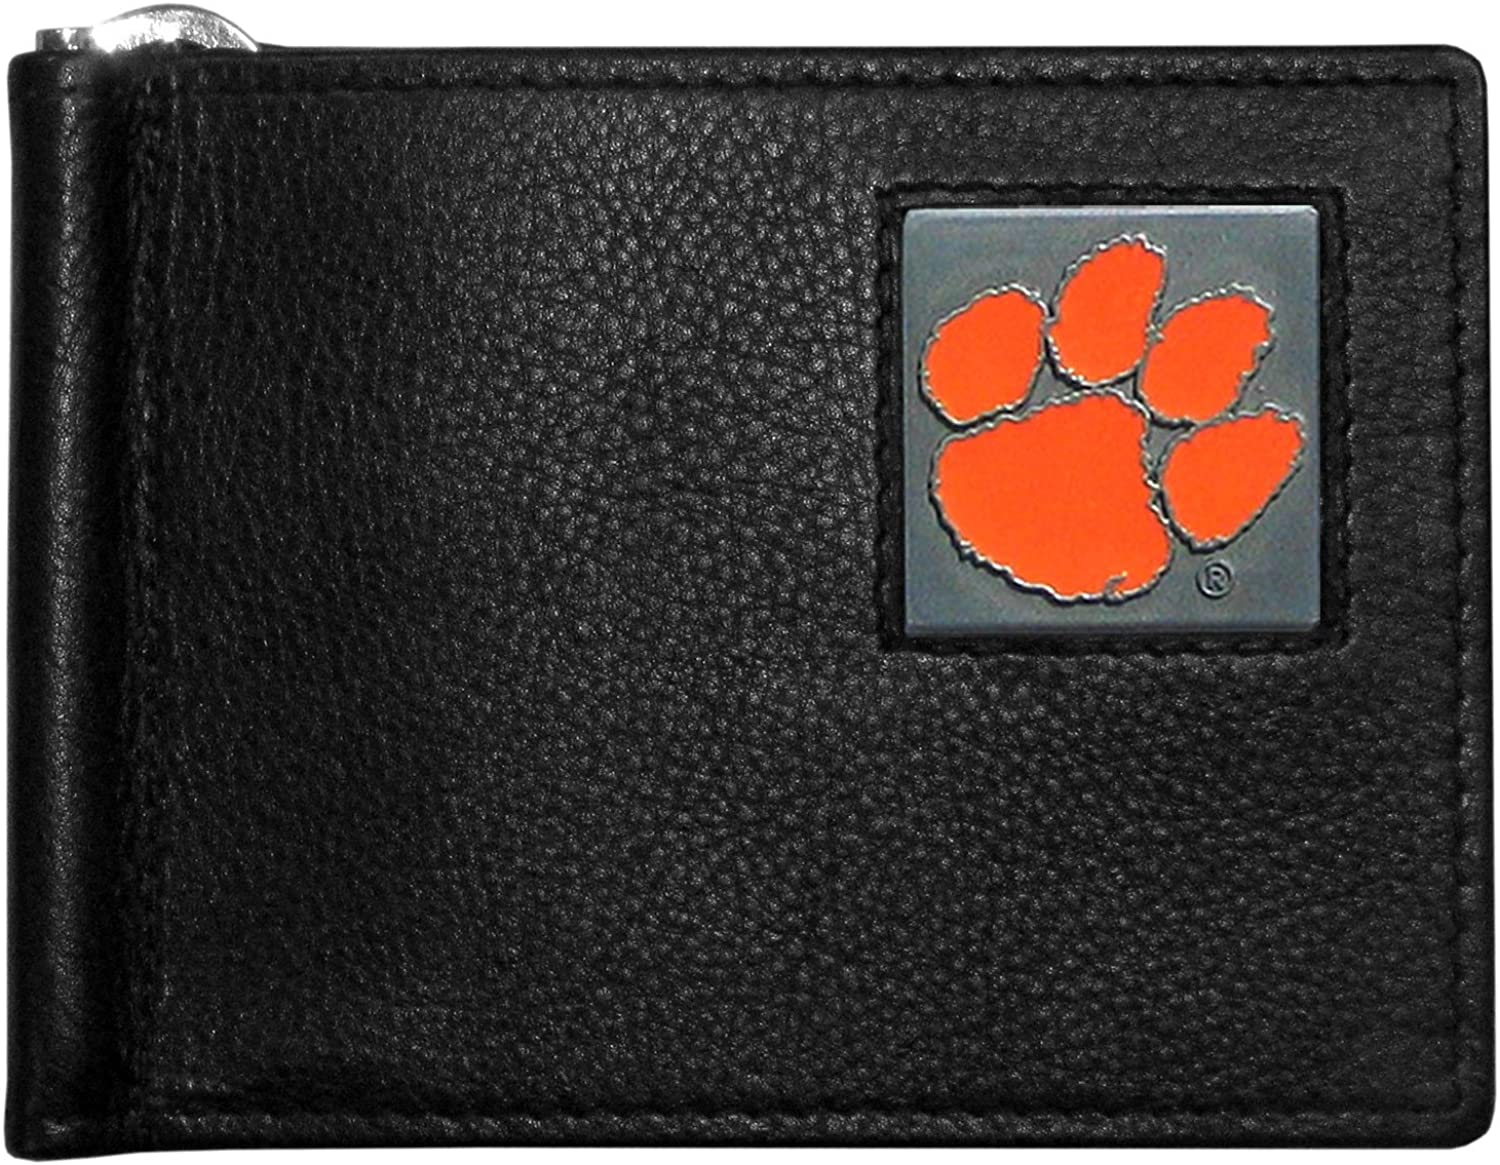 Max Low price 71% OFF Siskiyou Sports NCAA Leather Wallet Bill Clip